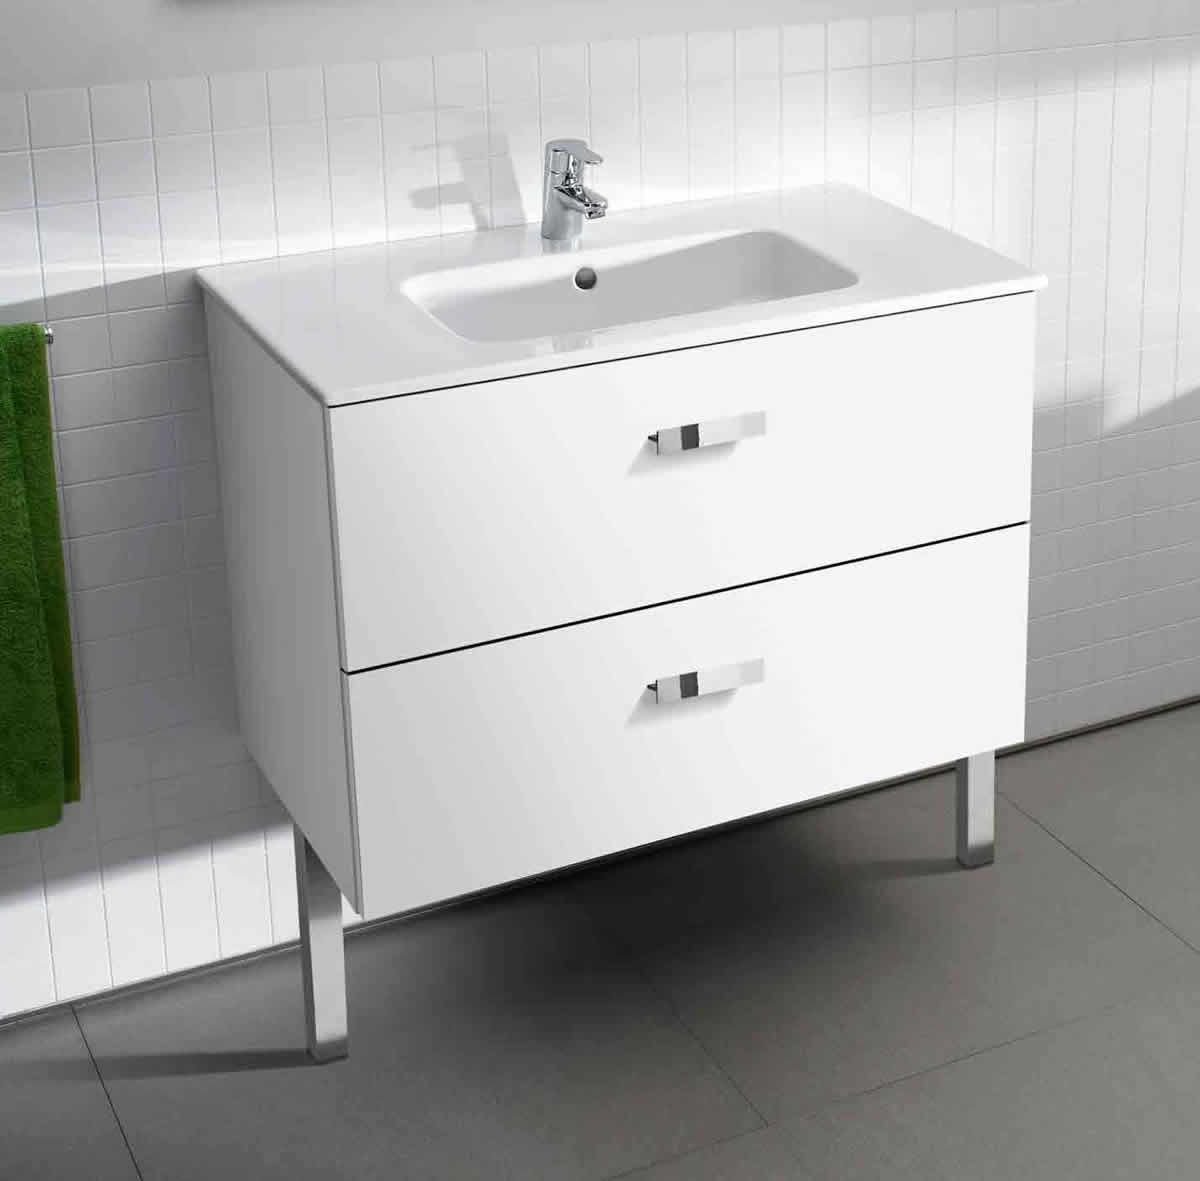 Roca Bathroom Accessories Roca Victoria Basic Unik Vanity Unit And Basin Uk Bathrooms